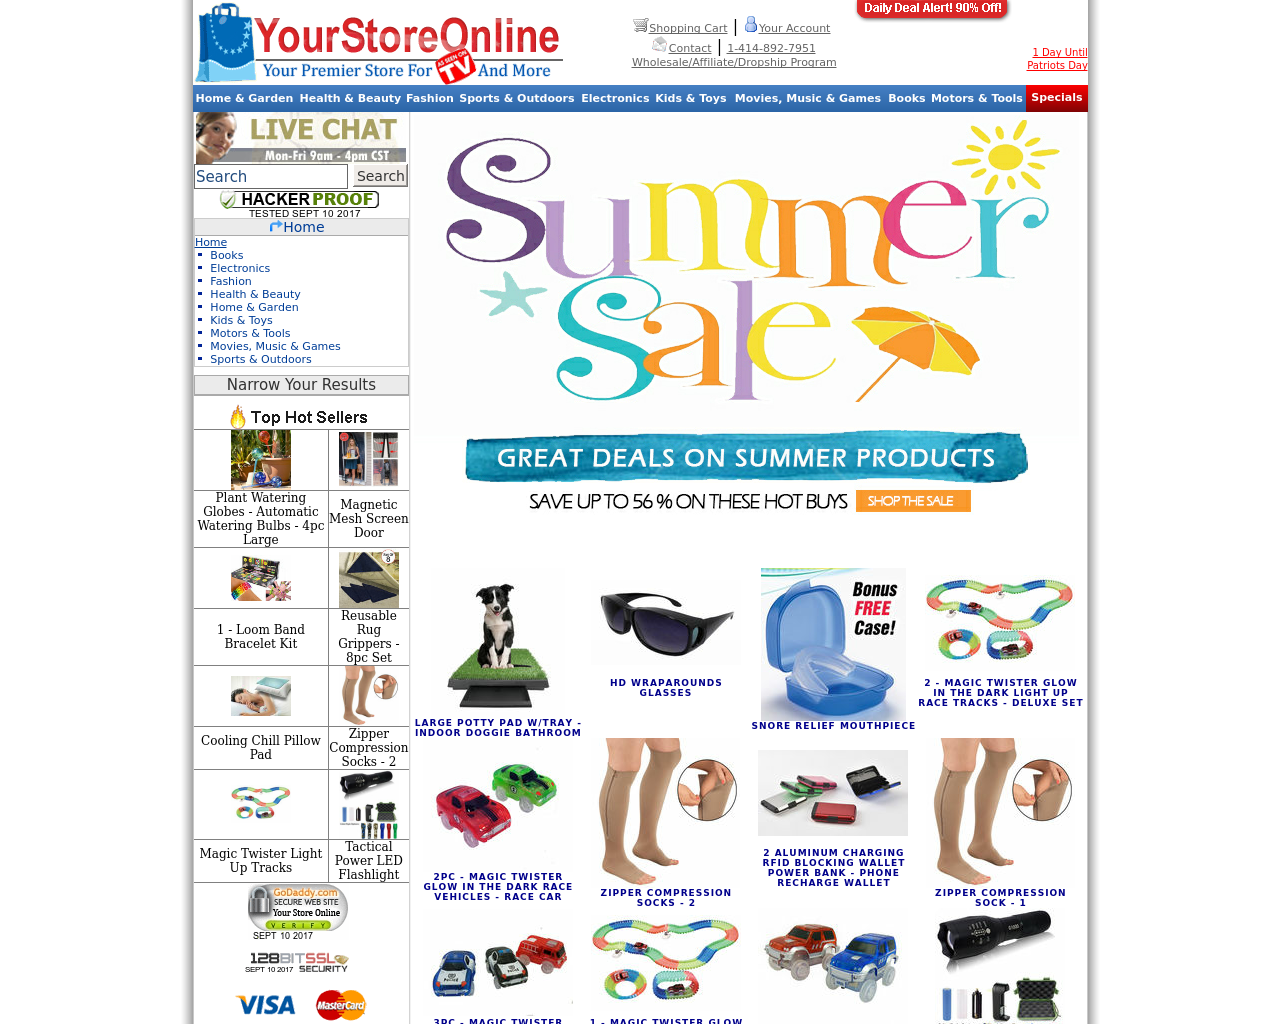 Your-Store-Online-Advertising-Reviews-Pricing